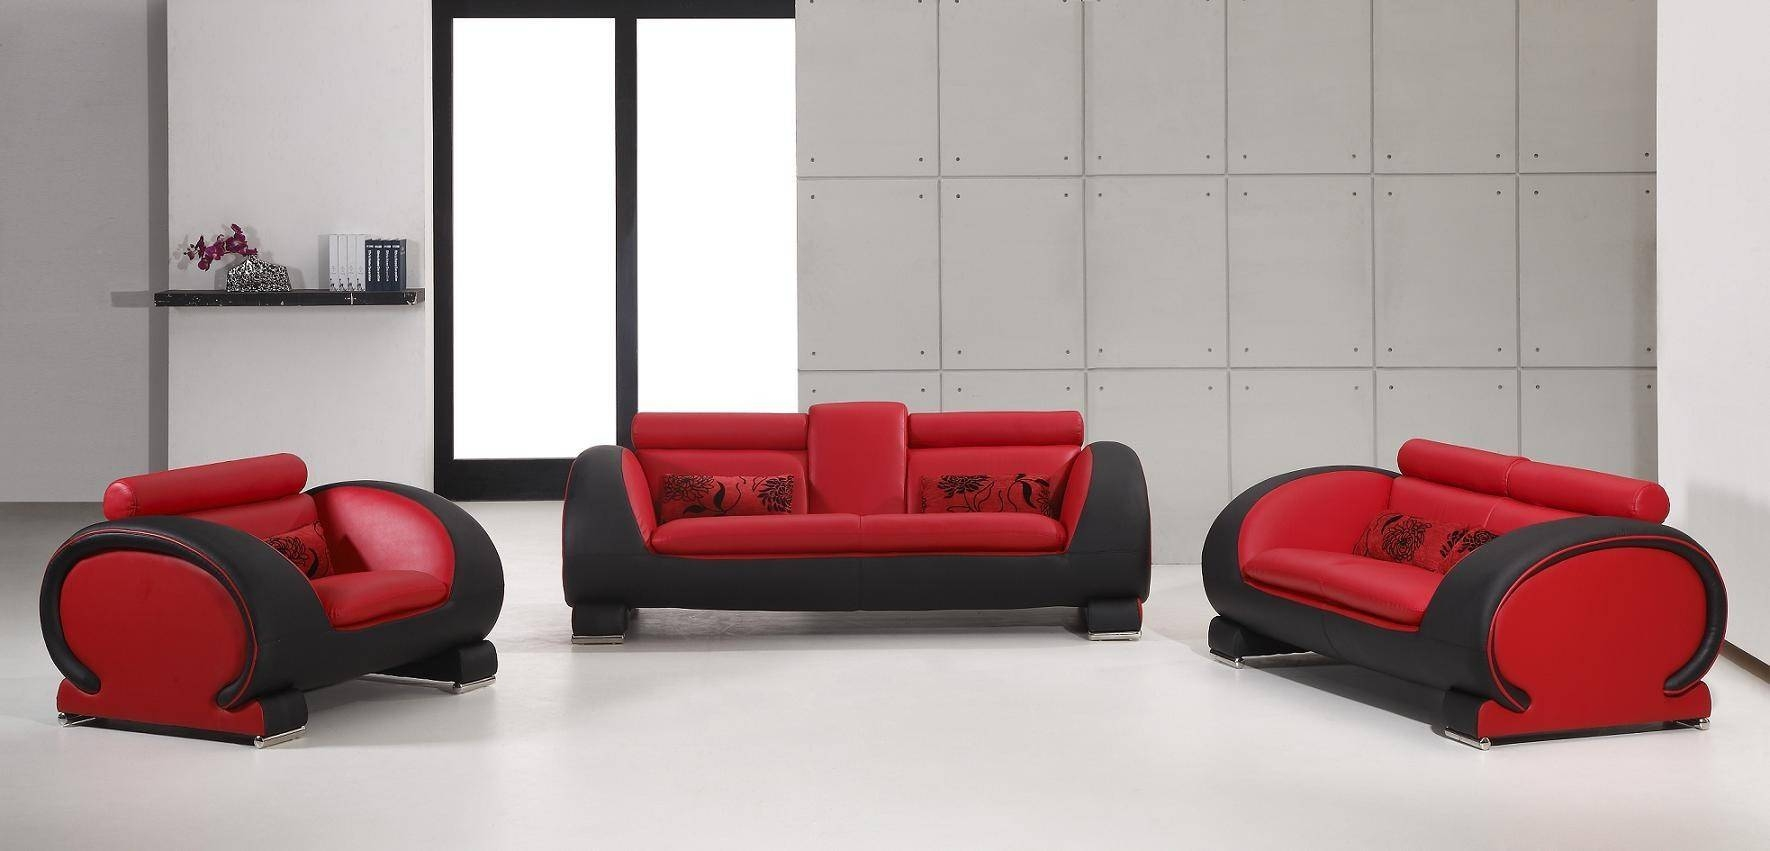 black and red sectional sofa standard dimensions india 15 collection of sofas